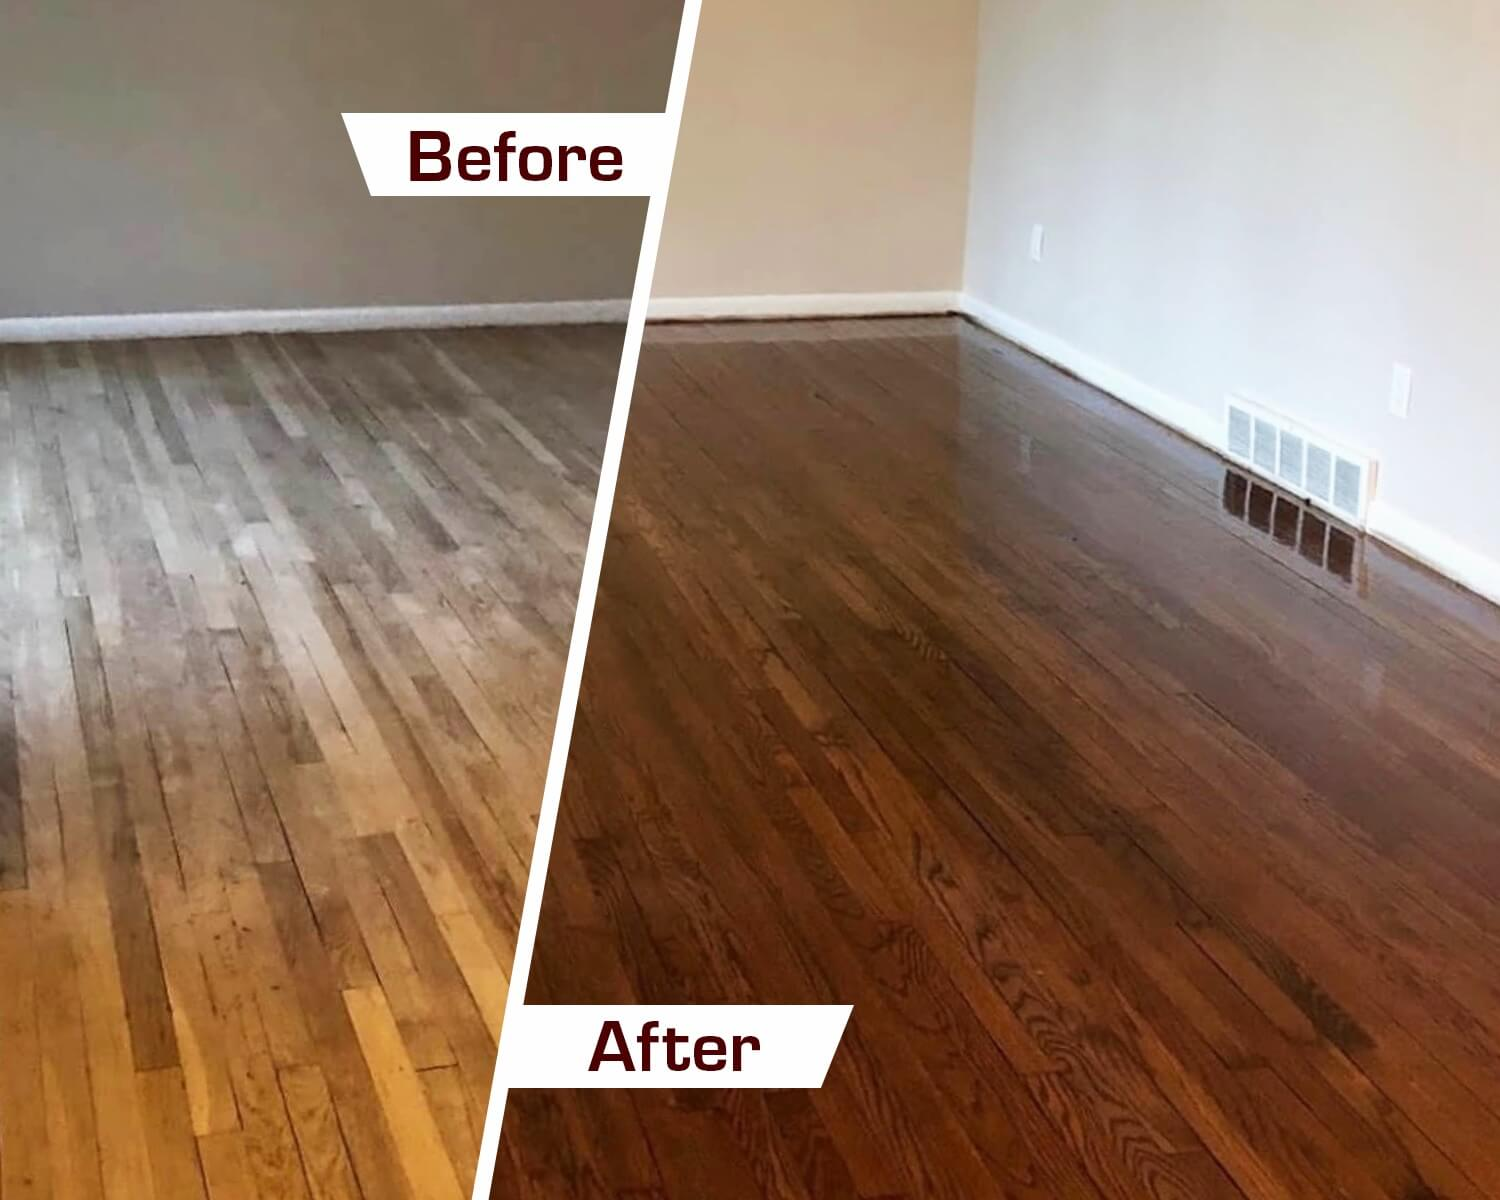 Before and after wood floor refinishing in orange county, ca